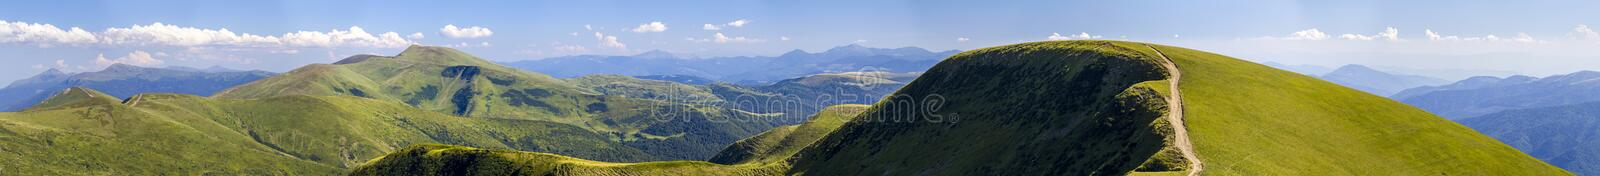 Panorama of green hills in summer mountains with gravel road for royalty free stock photos